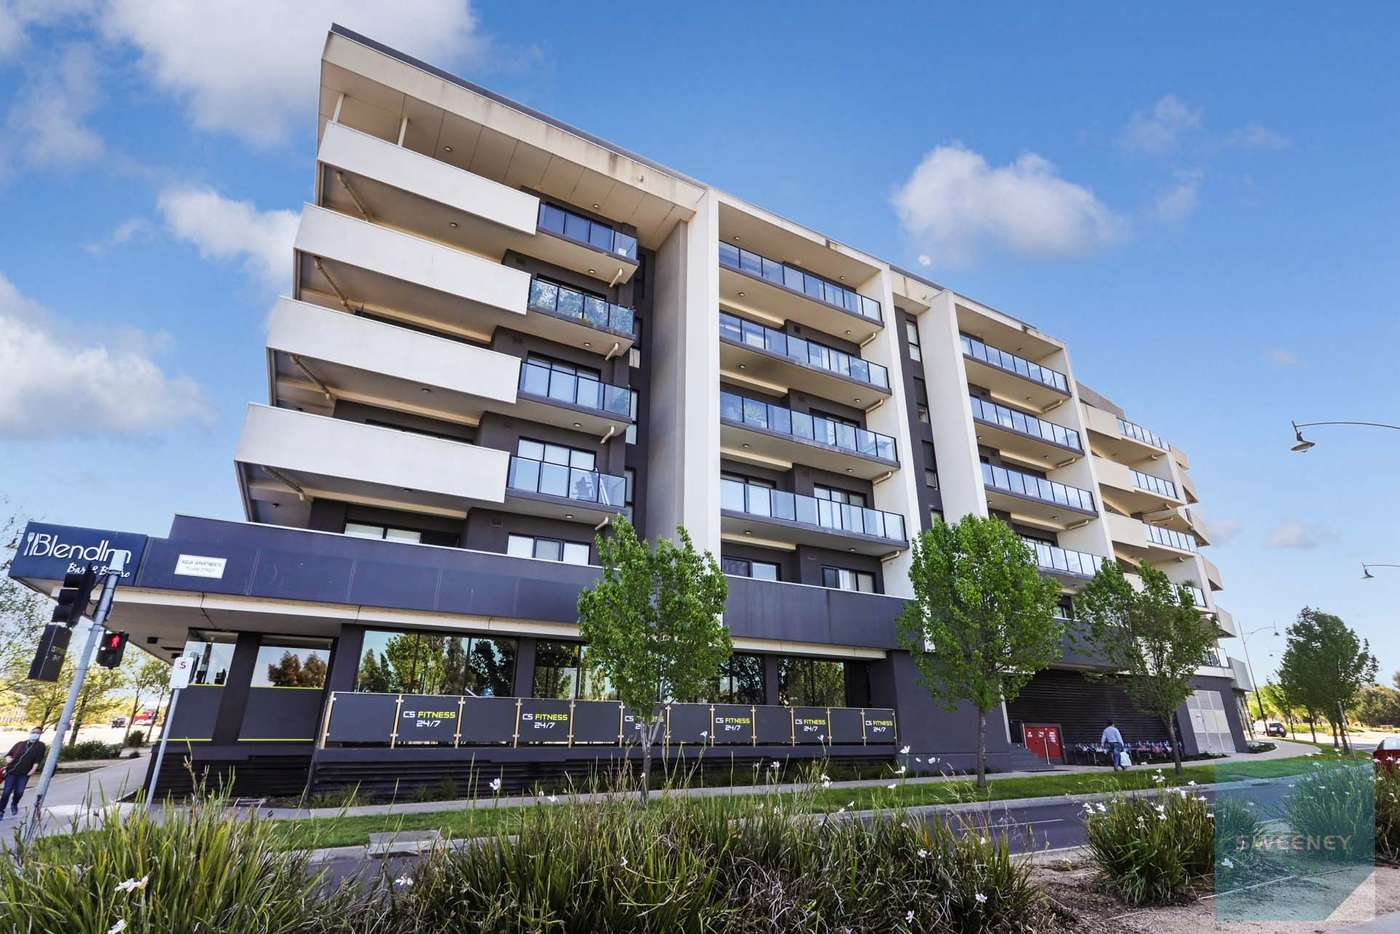 Main view of Homely apartment listing, 146/73 Lake Street, Caroline Springs VIC 3023